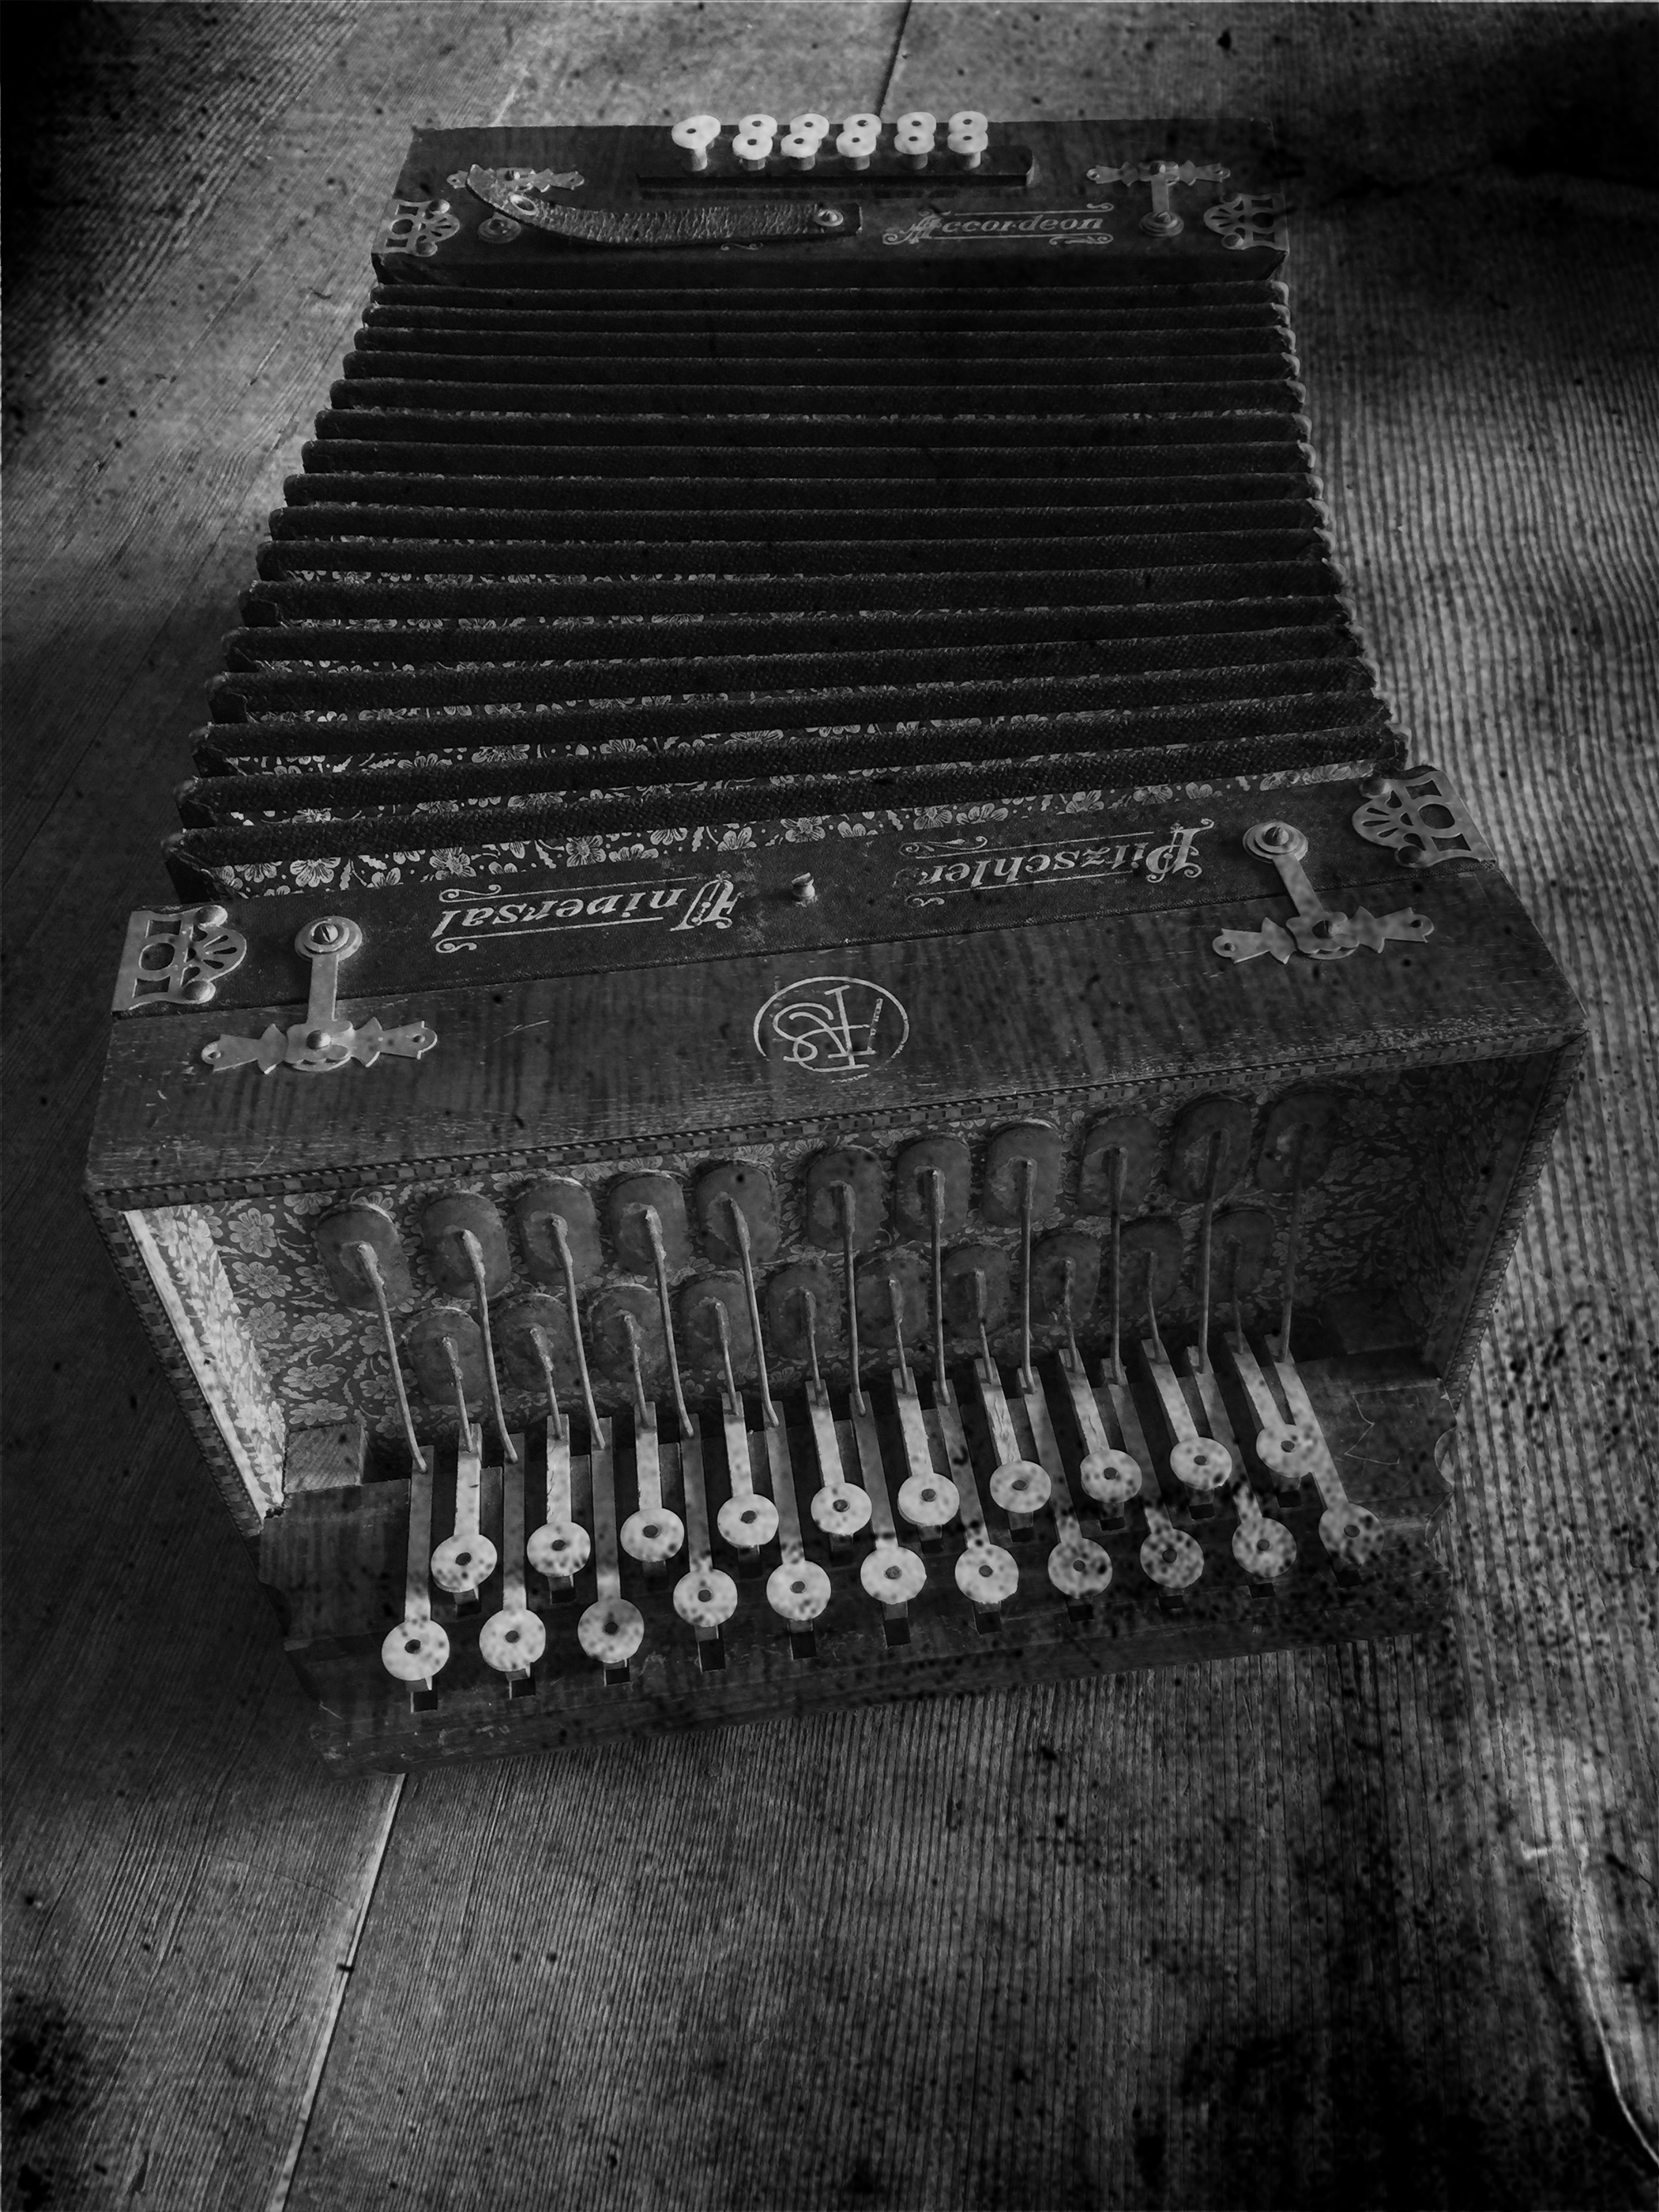 accordianIMG_6947.bw